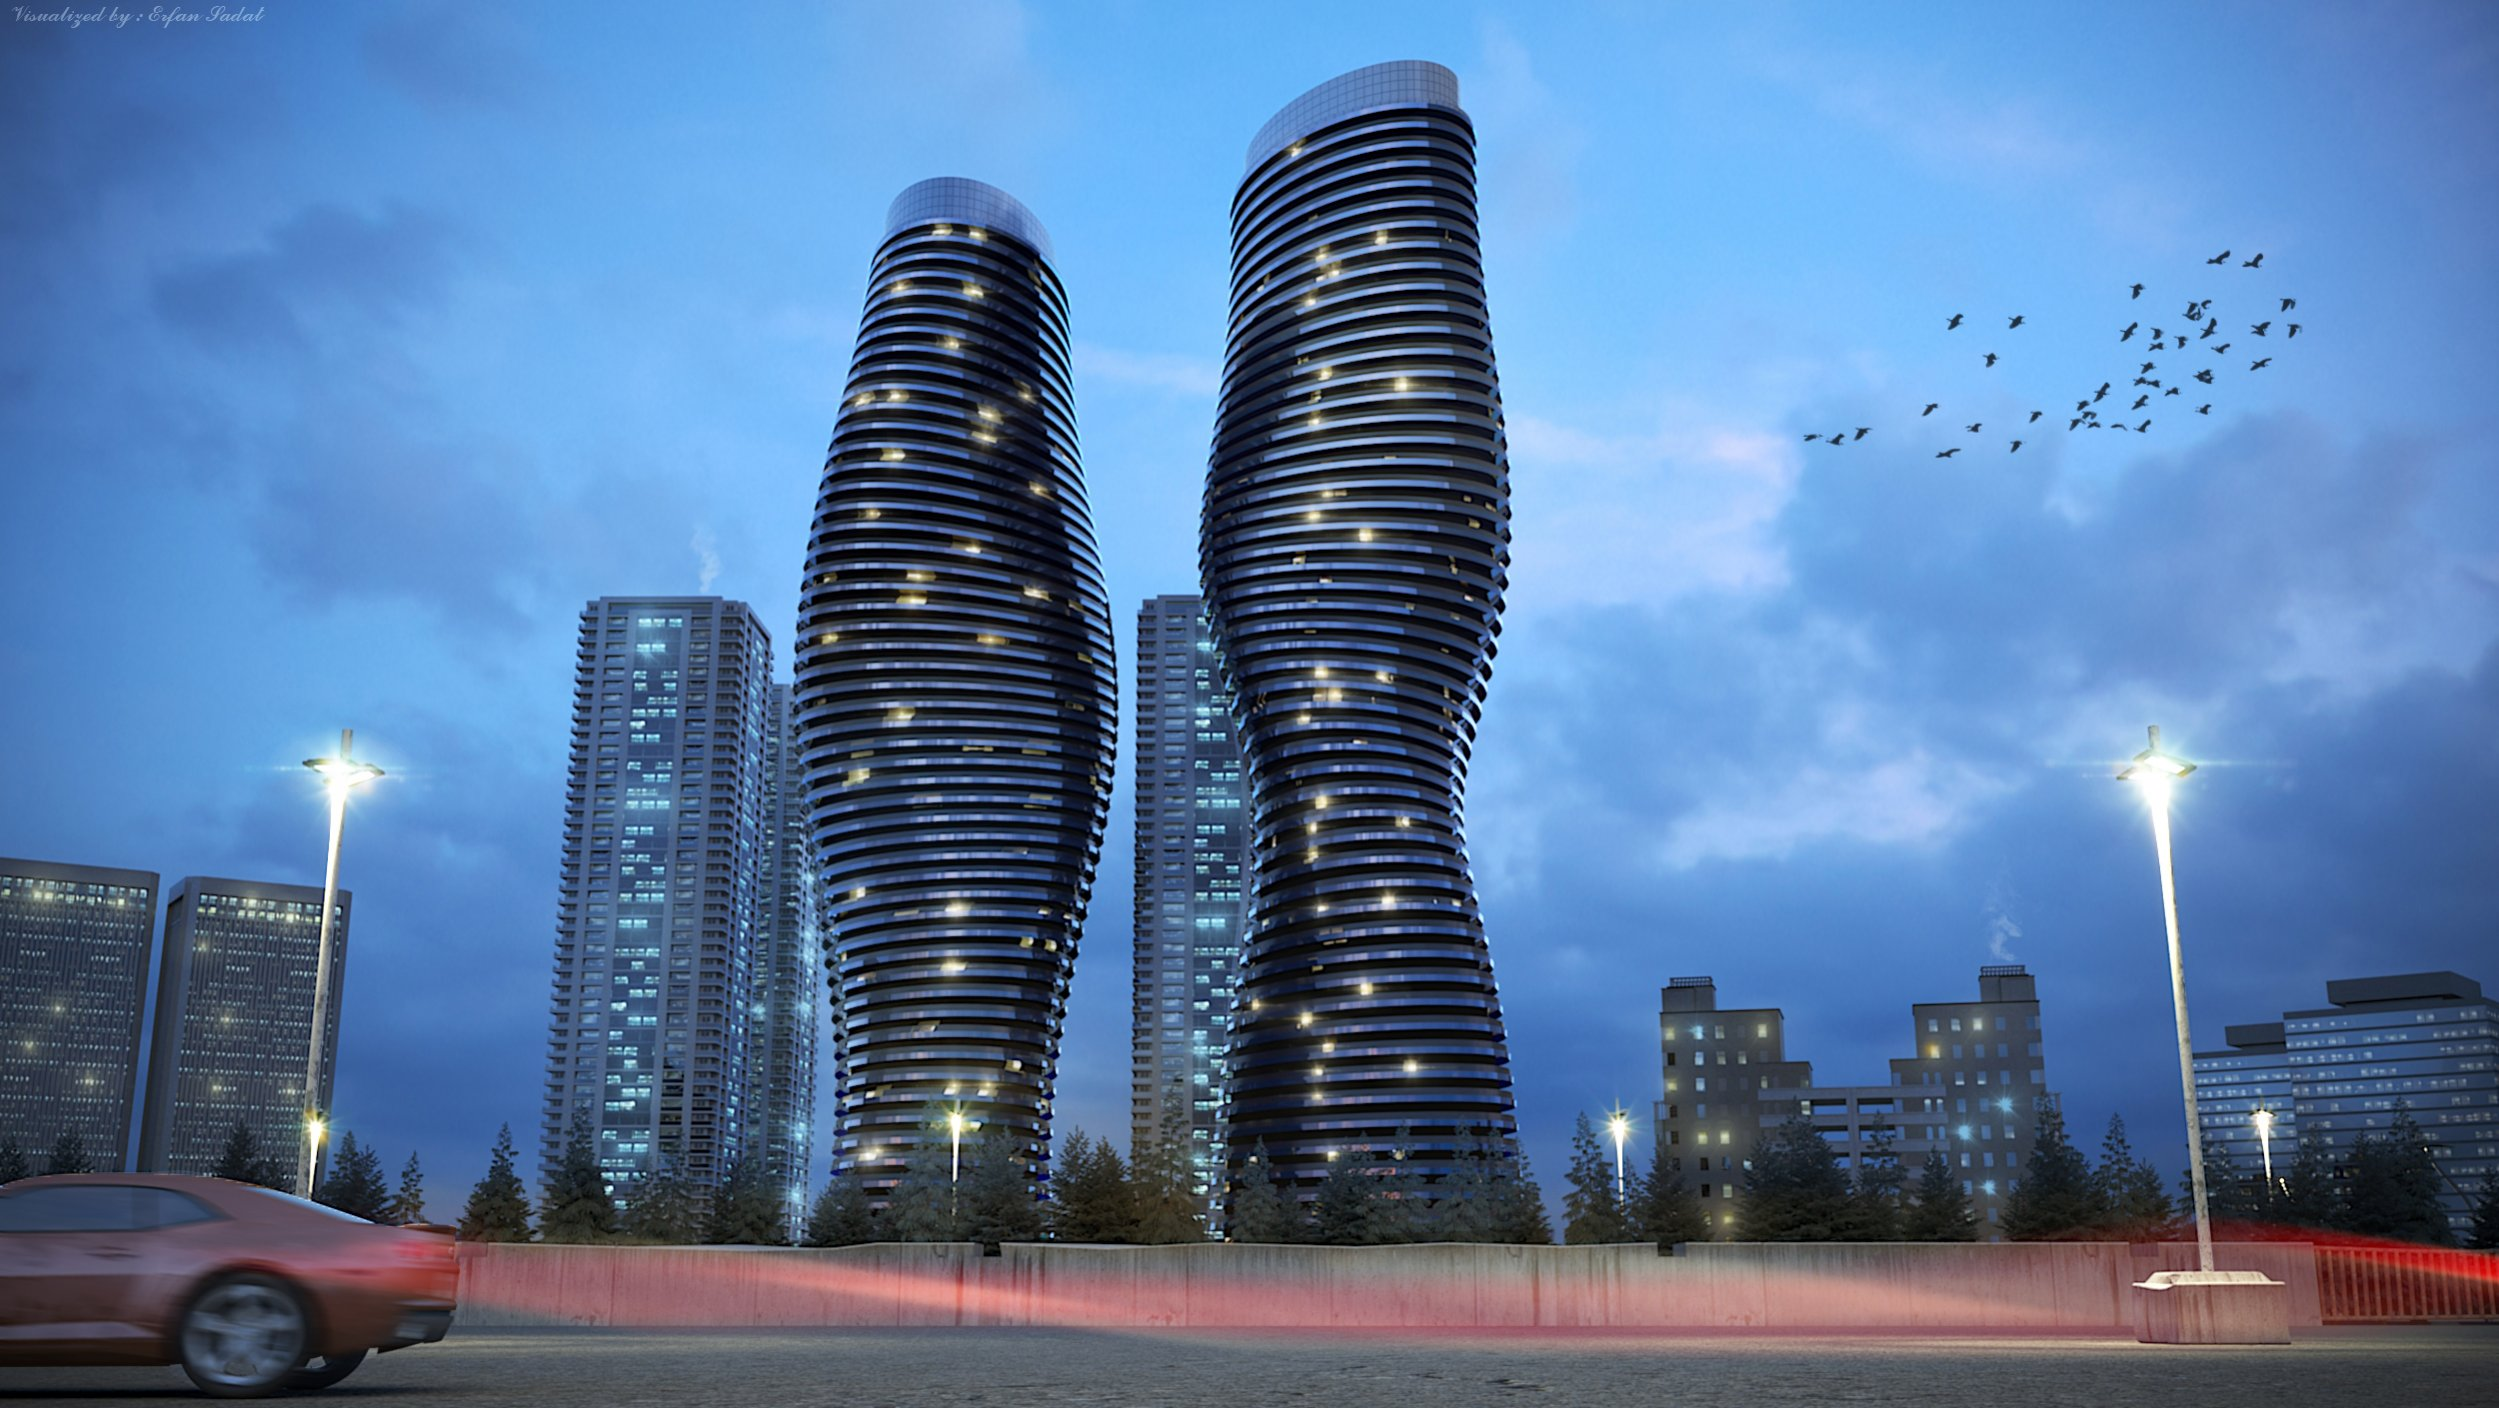 Absolute towers revit dynamo for Absolute towers